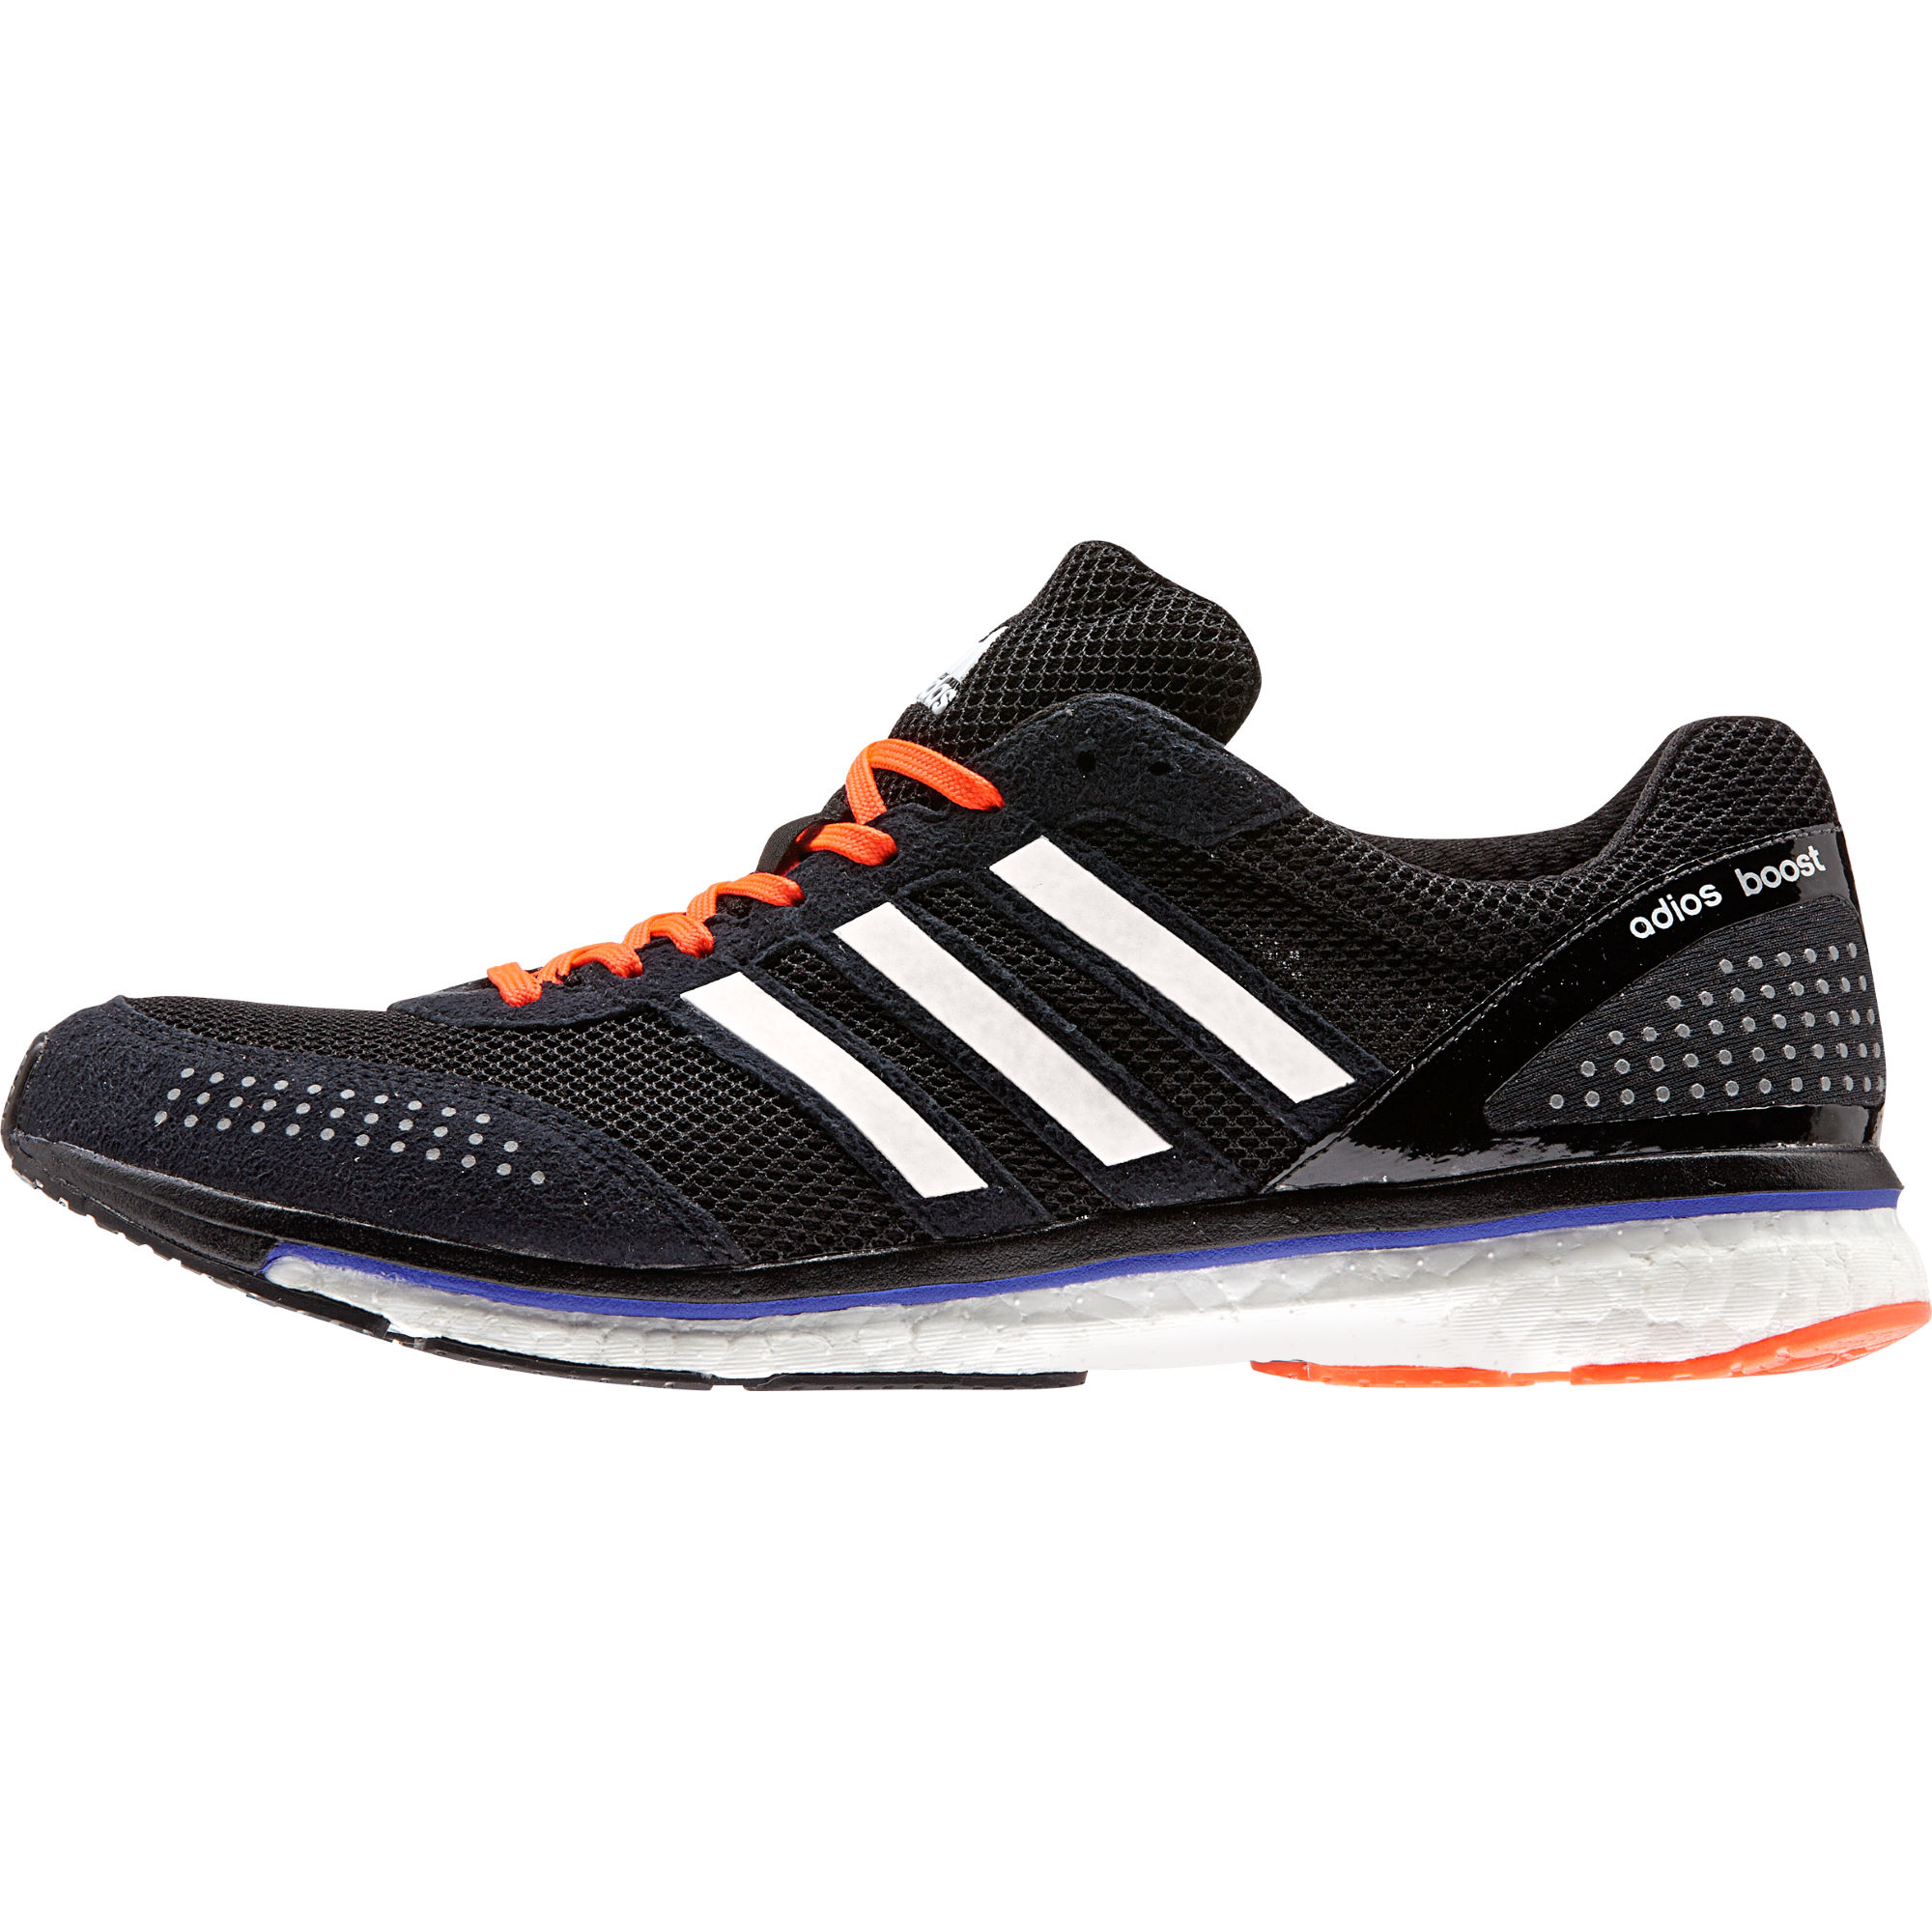 Adidas Boost 2 Shoes